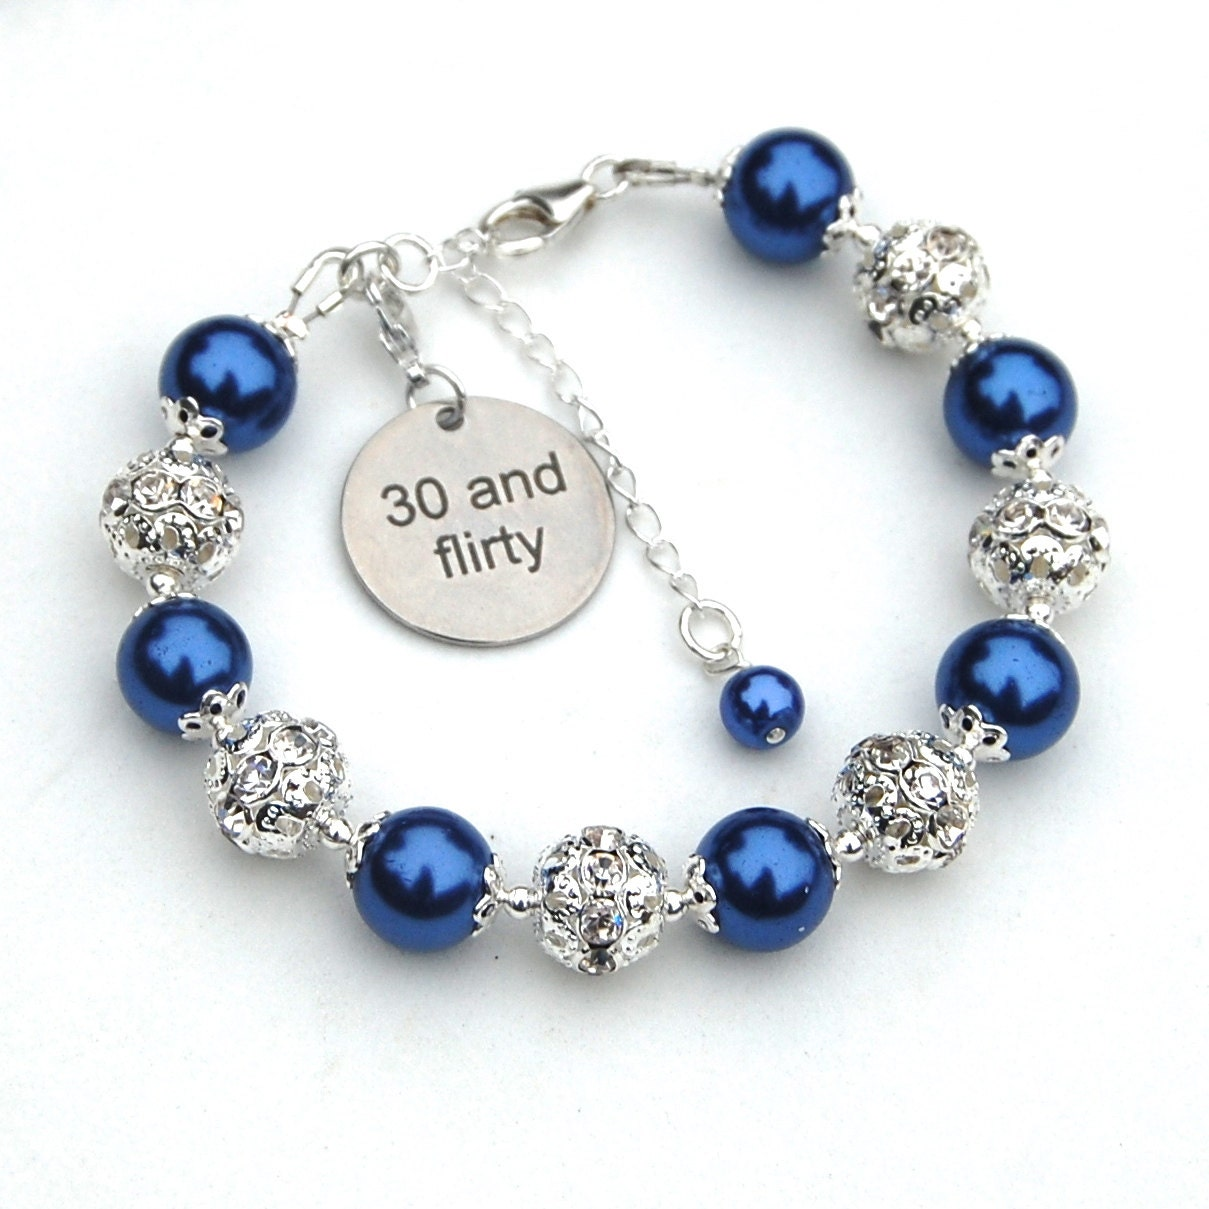 30th birthday gift for her 30 and flirty 30 charm bracelet